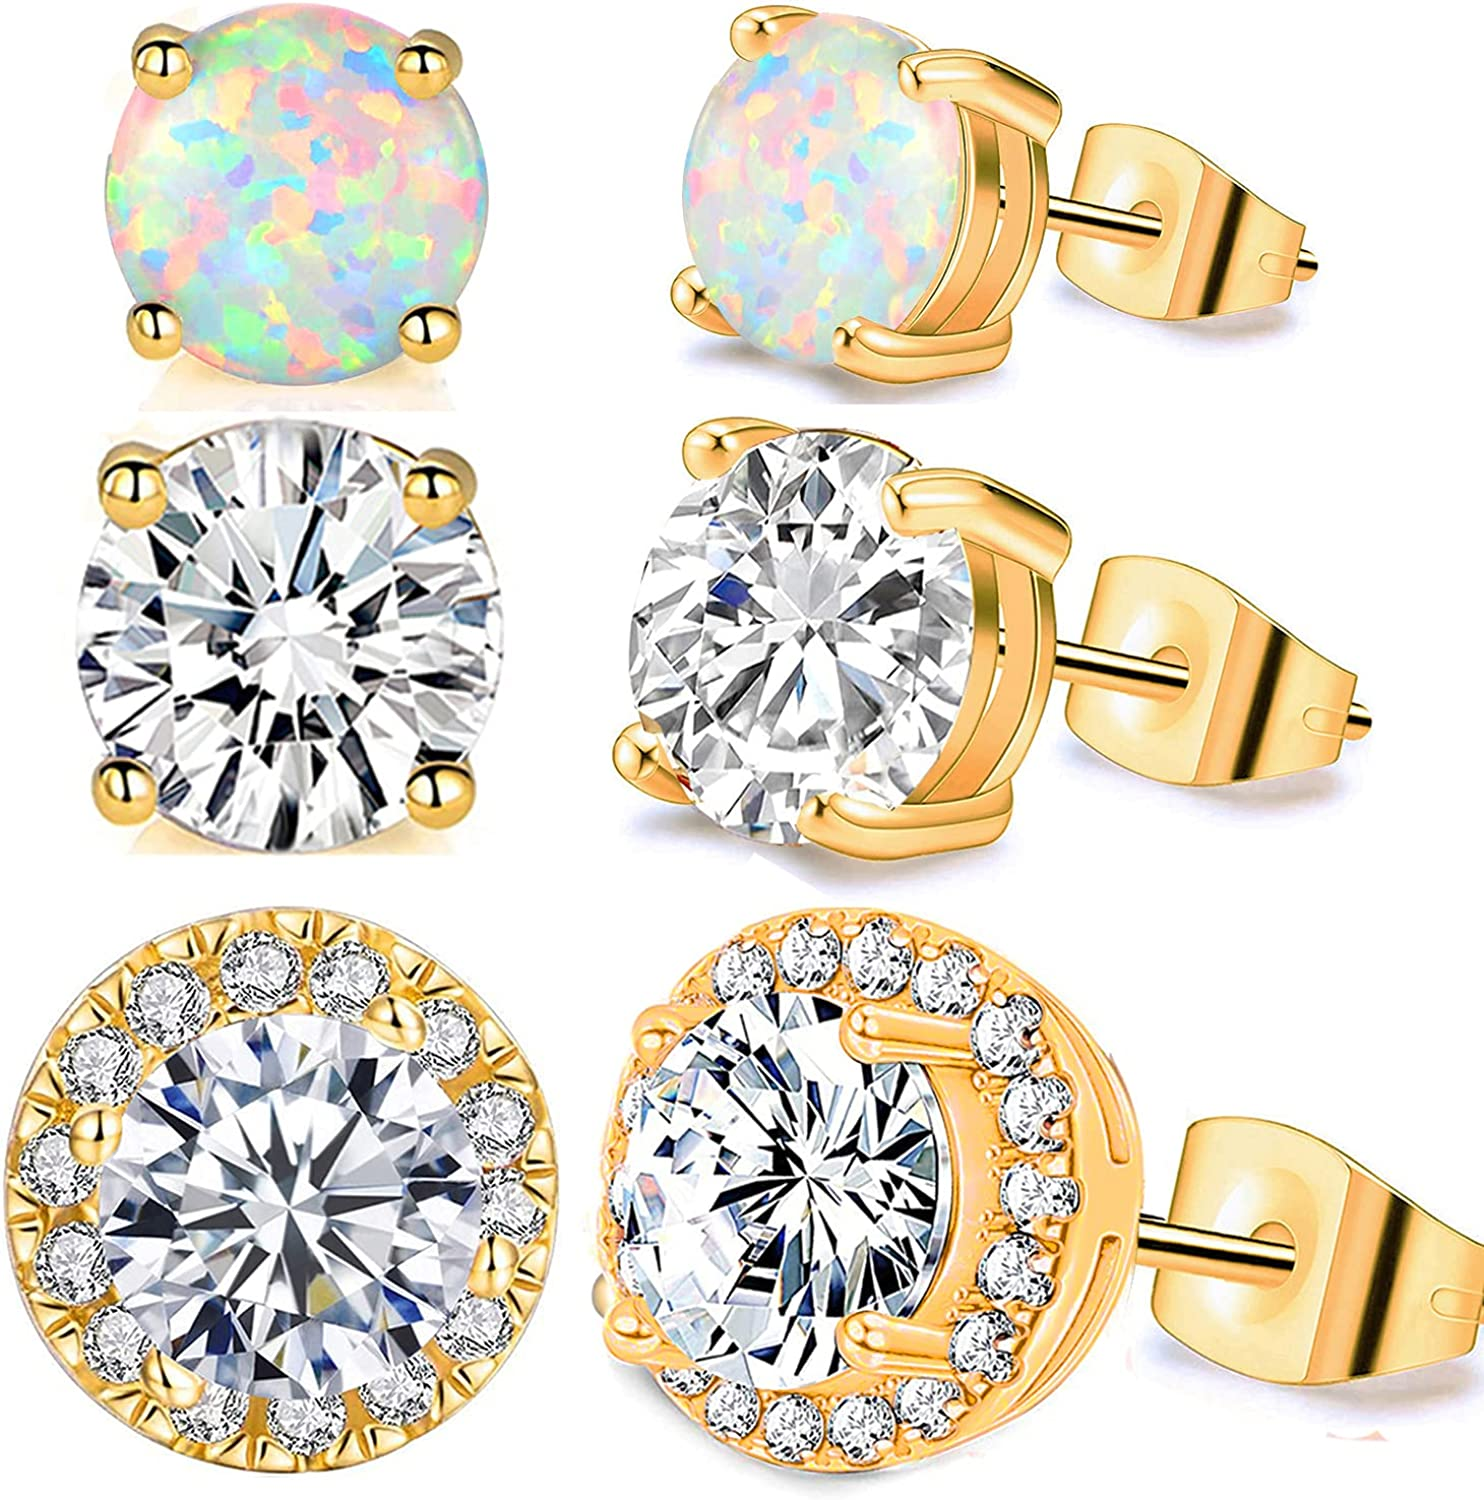 Pack of Earrings Easy-to-use for Women Men G Yellow 18K Studs Free Shipping New Hypoallergenic